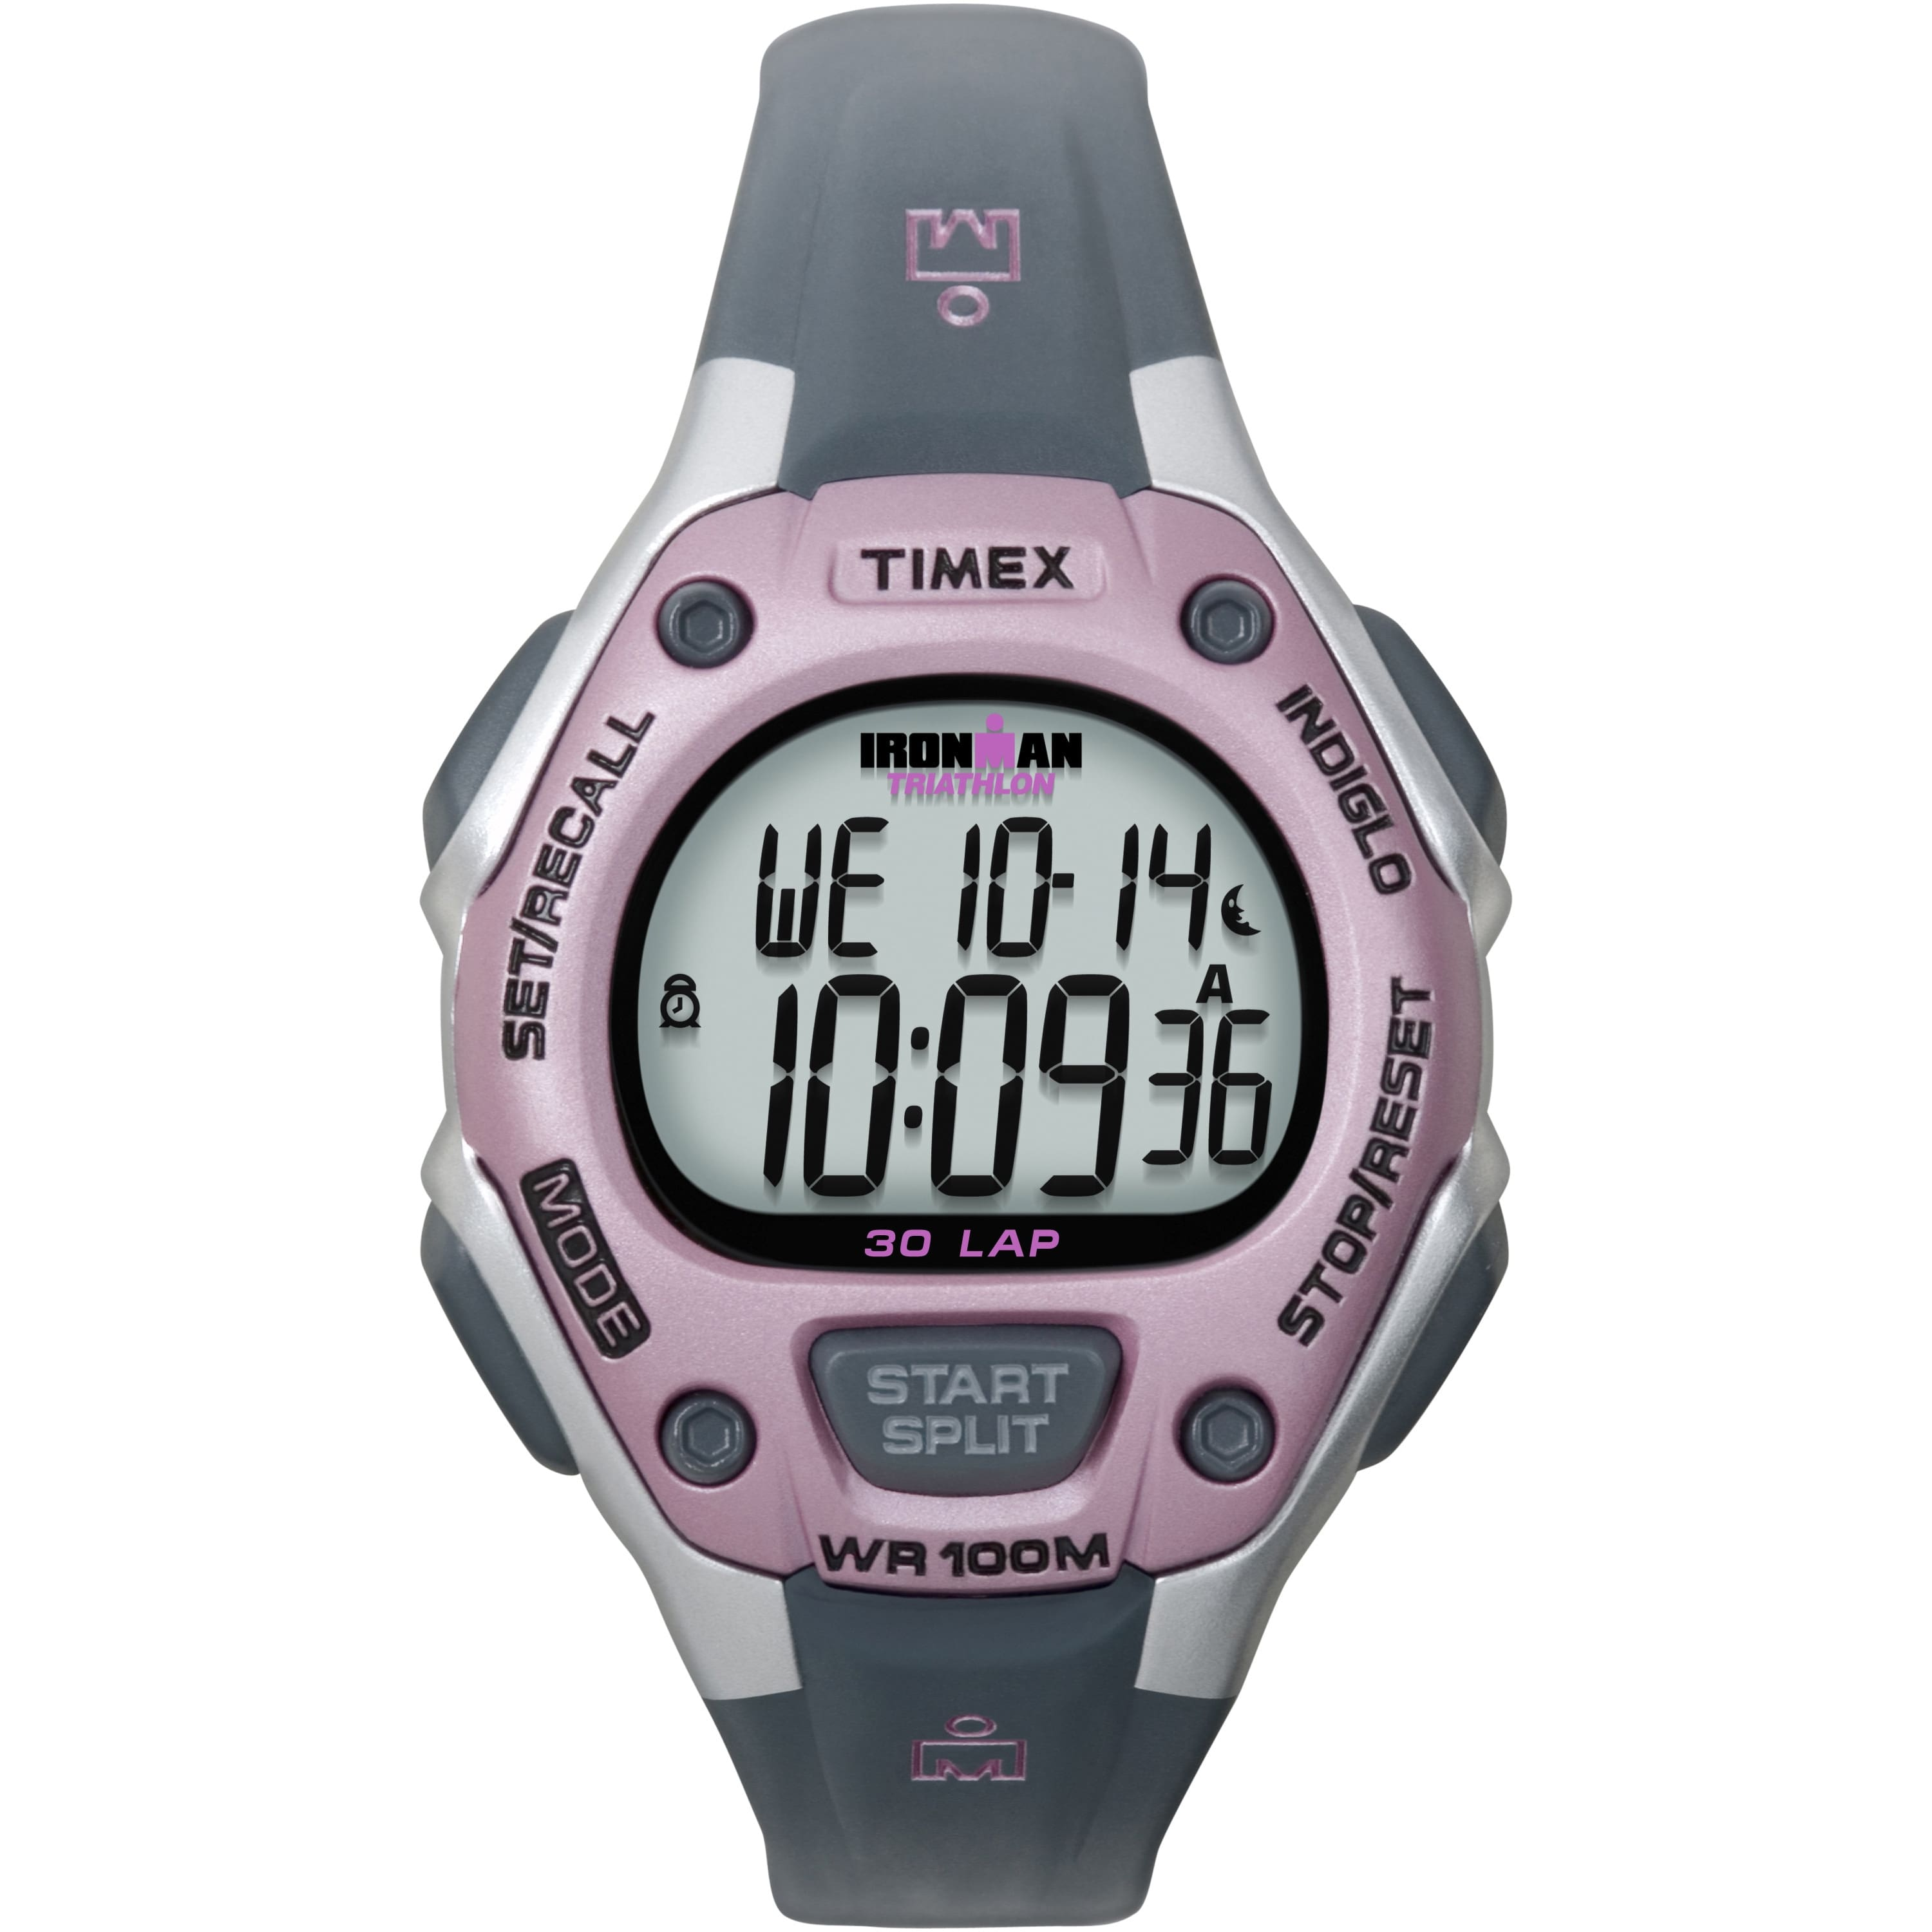 Price Mistake Timex Ironman Classic 30 Mid-Size Watch For $7  (Add-On Item)